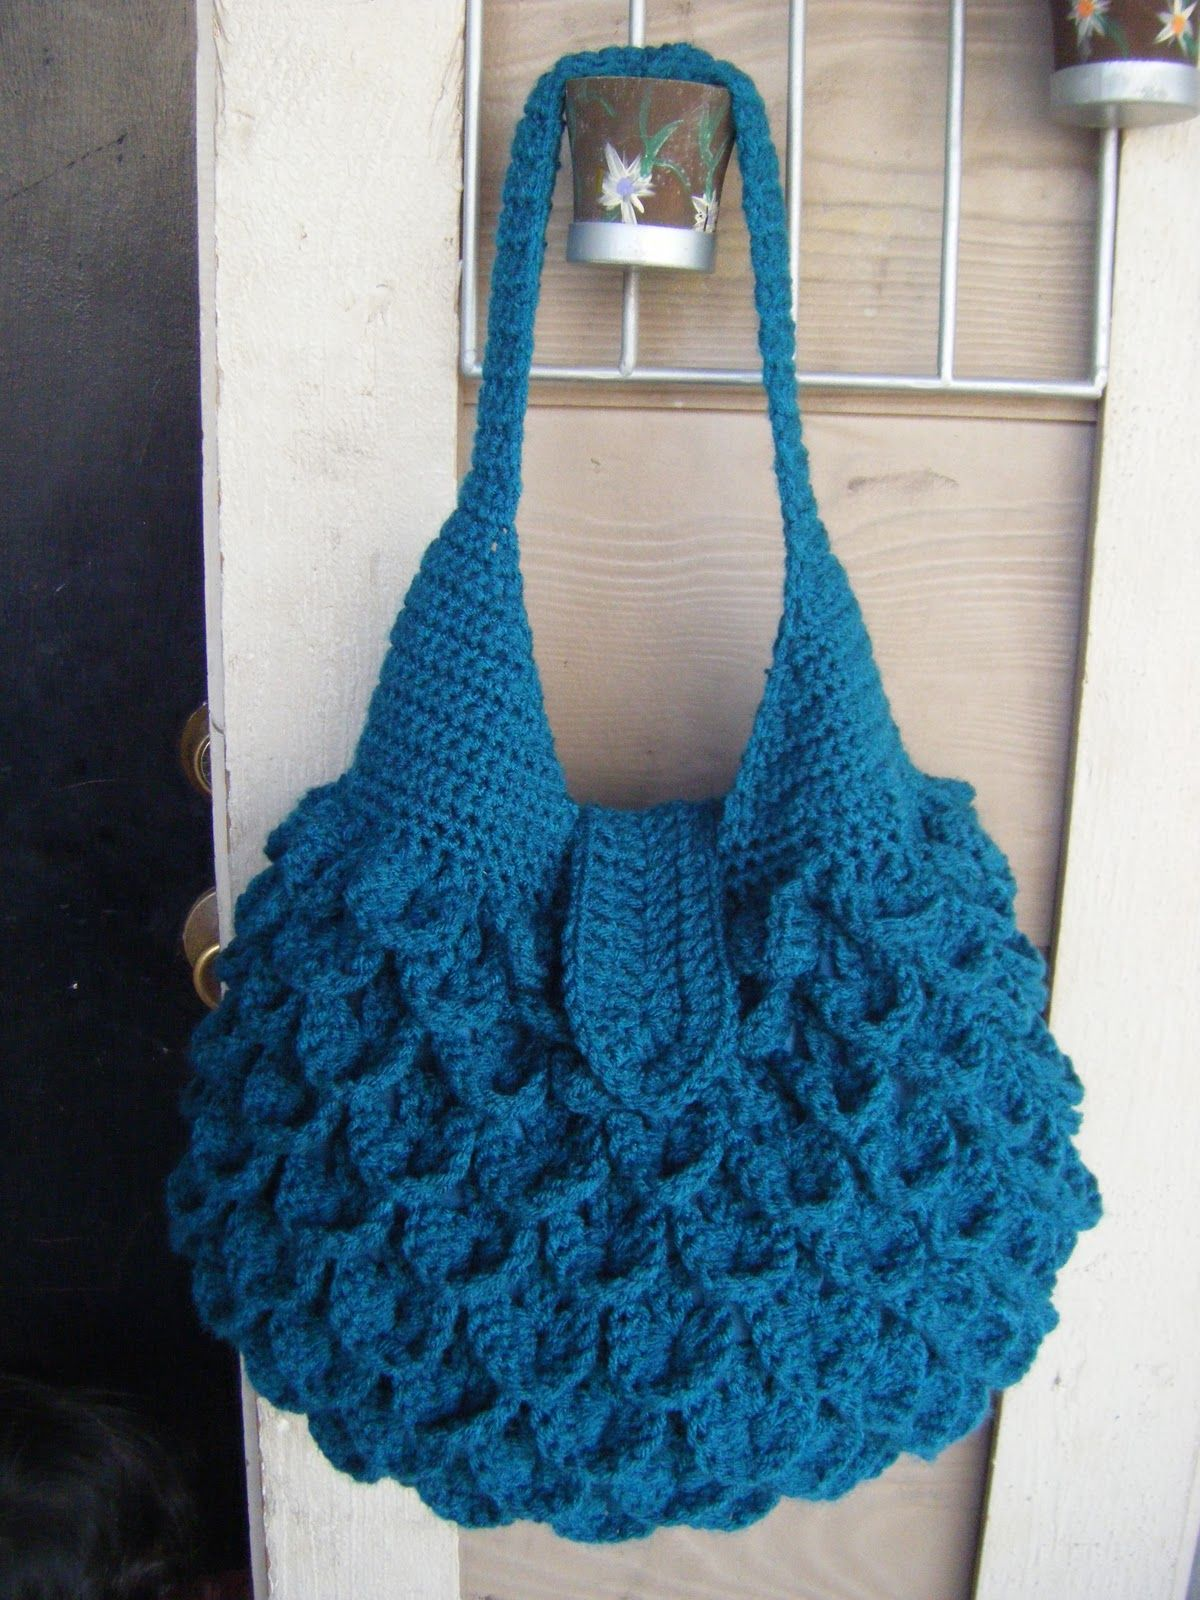 Best patterns crocodile crochet bag pattern lovely bags best patterns crocodile crochet bag pattern bankloansurffo Image collections